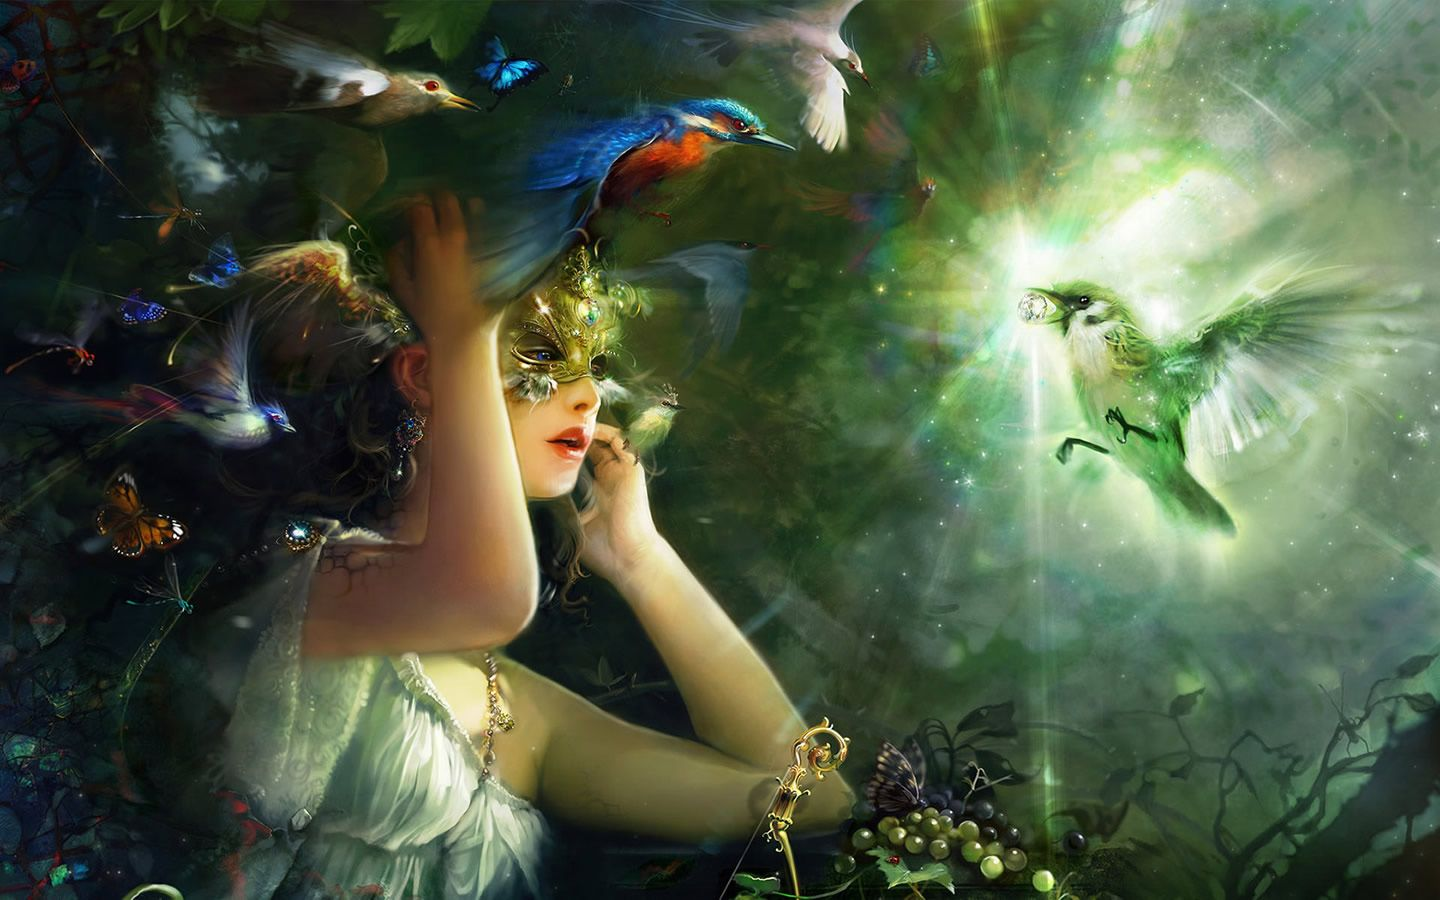 fantasy_desktop_background_1440x900_hq_widescreen_wallpapers_for_deskop